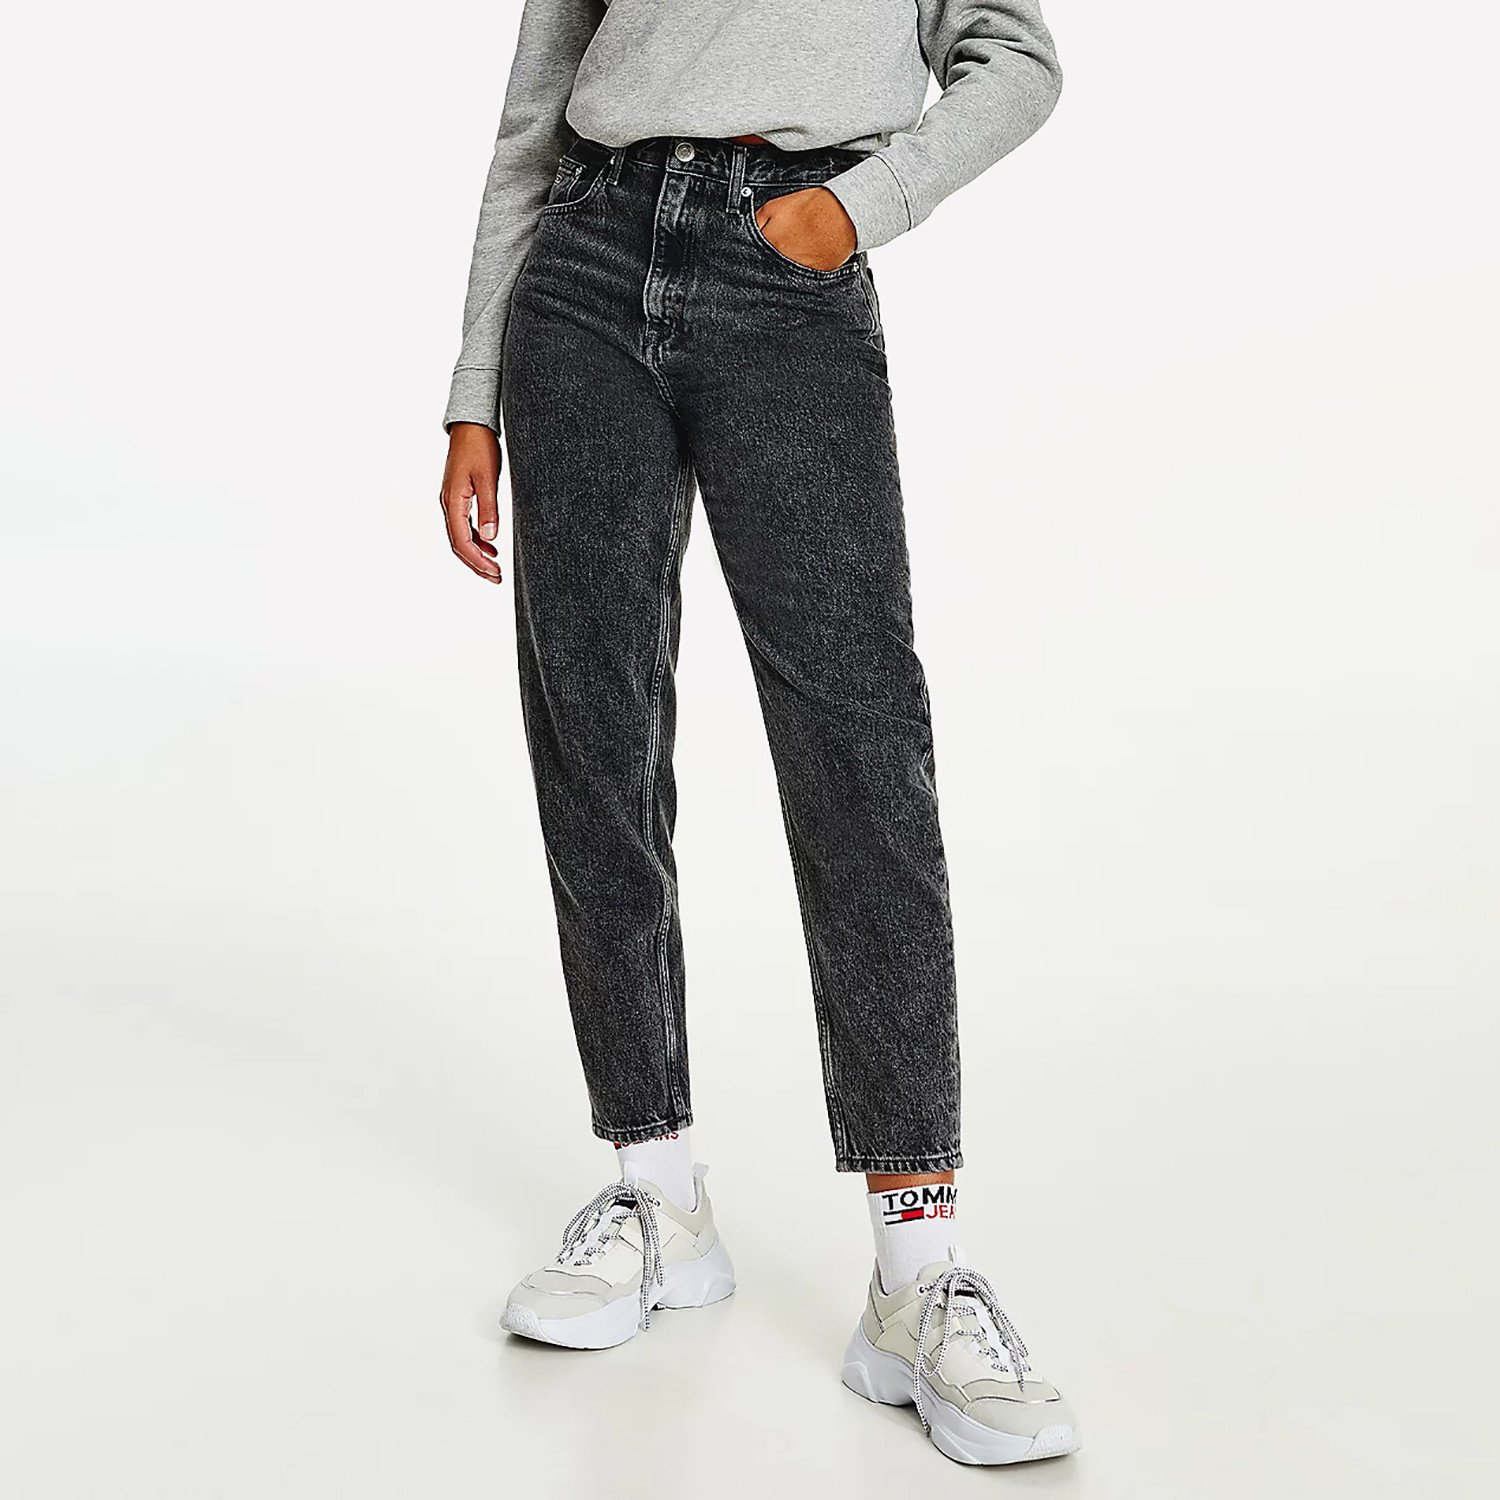 Tommy Jeans Mom Ultra High Rise Tapered Faded Γυναικείο Jean Παντελόνι (Μήκος 30L) (9000090058_36156)